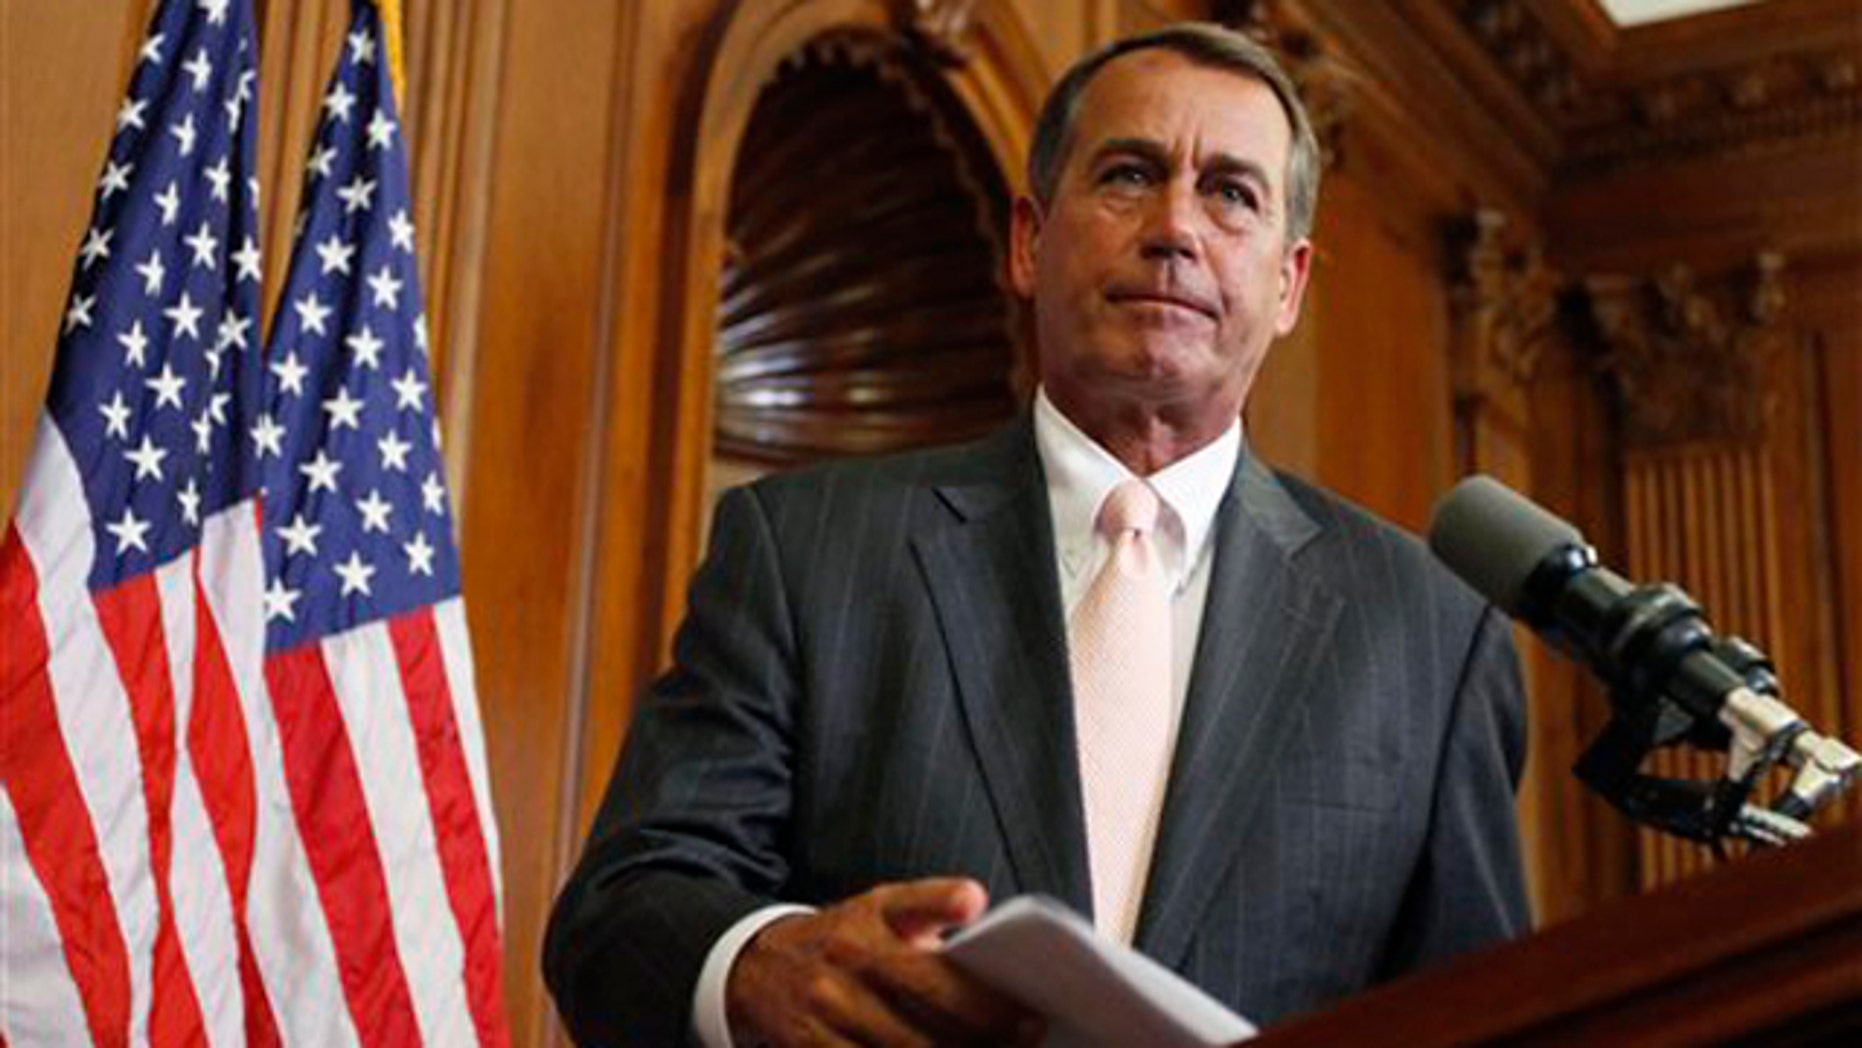 In this June 16 photo, House Minority Leader John Boehner participates in a ceremony on Capitol Hill in Washington. (AP Photo)